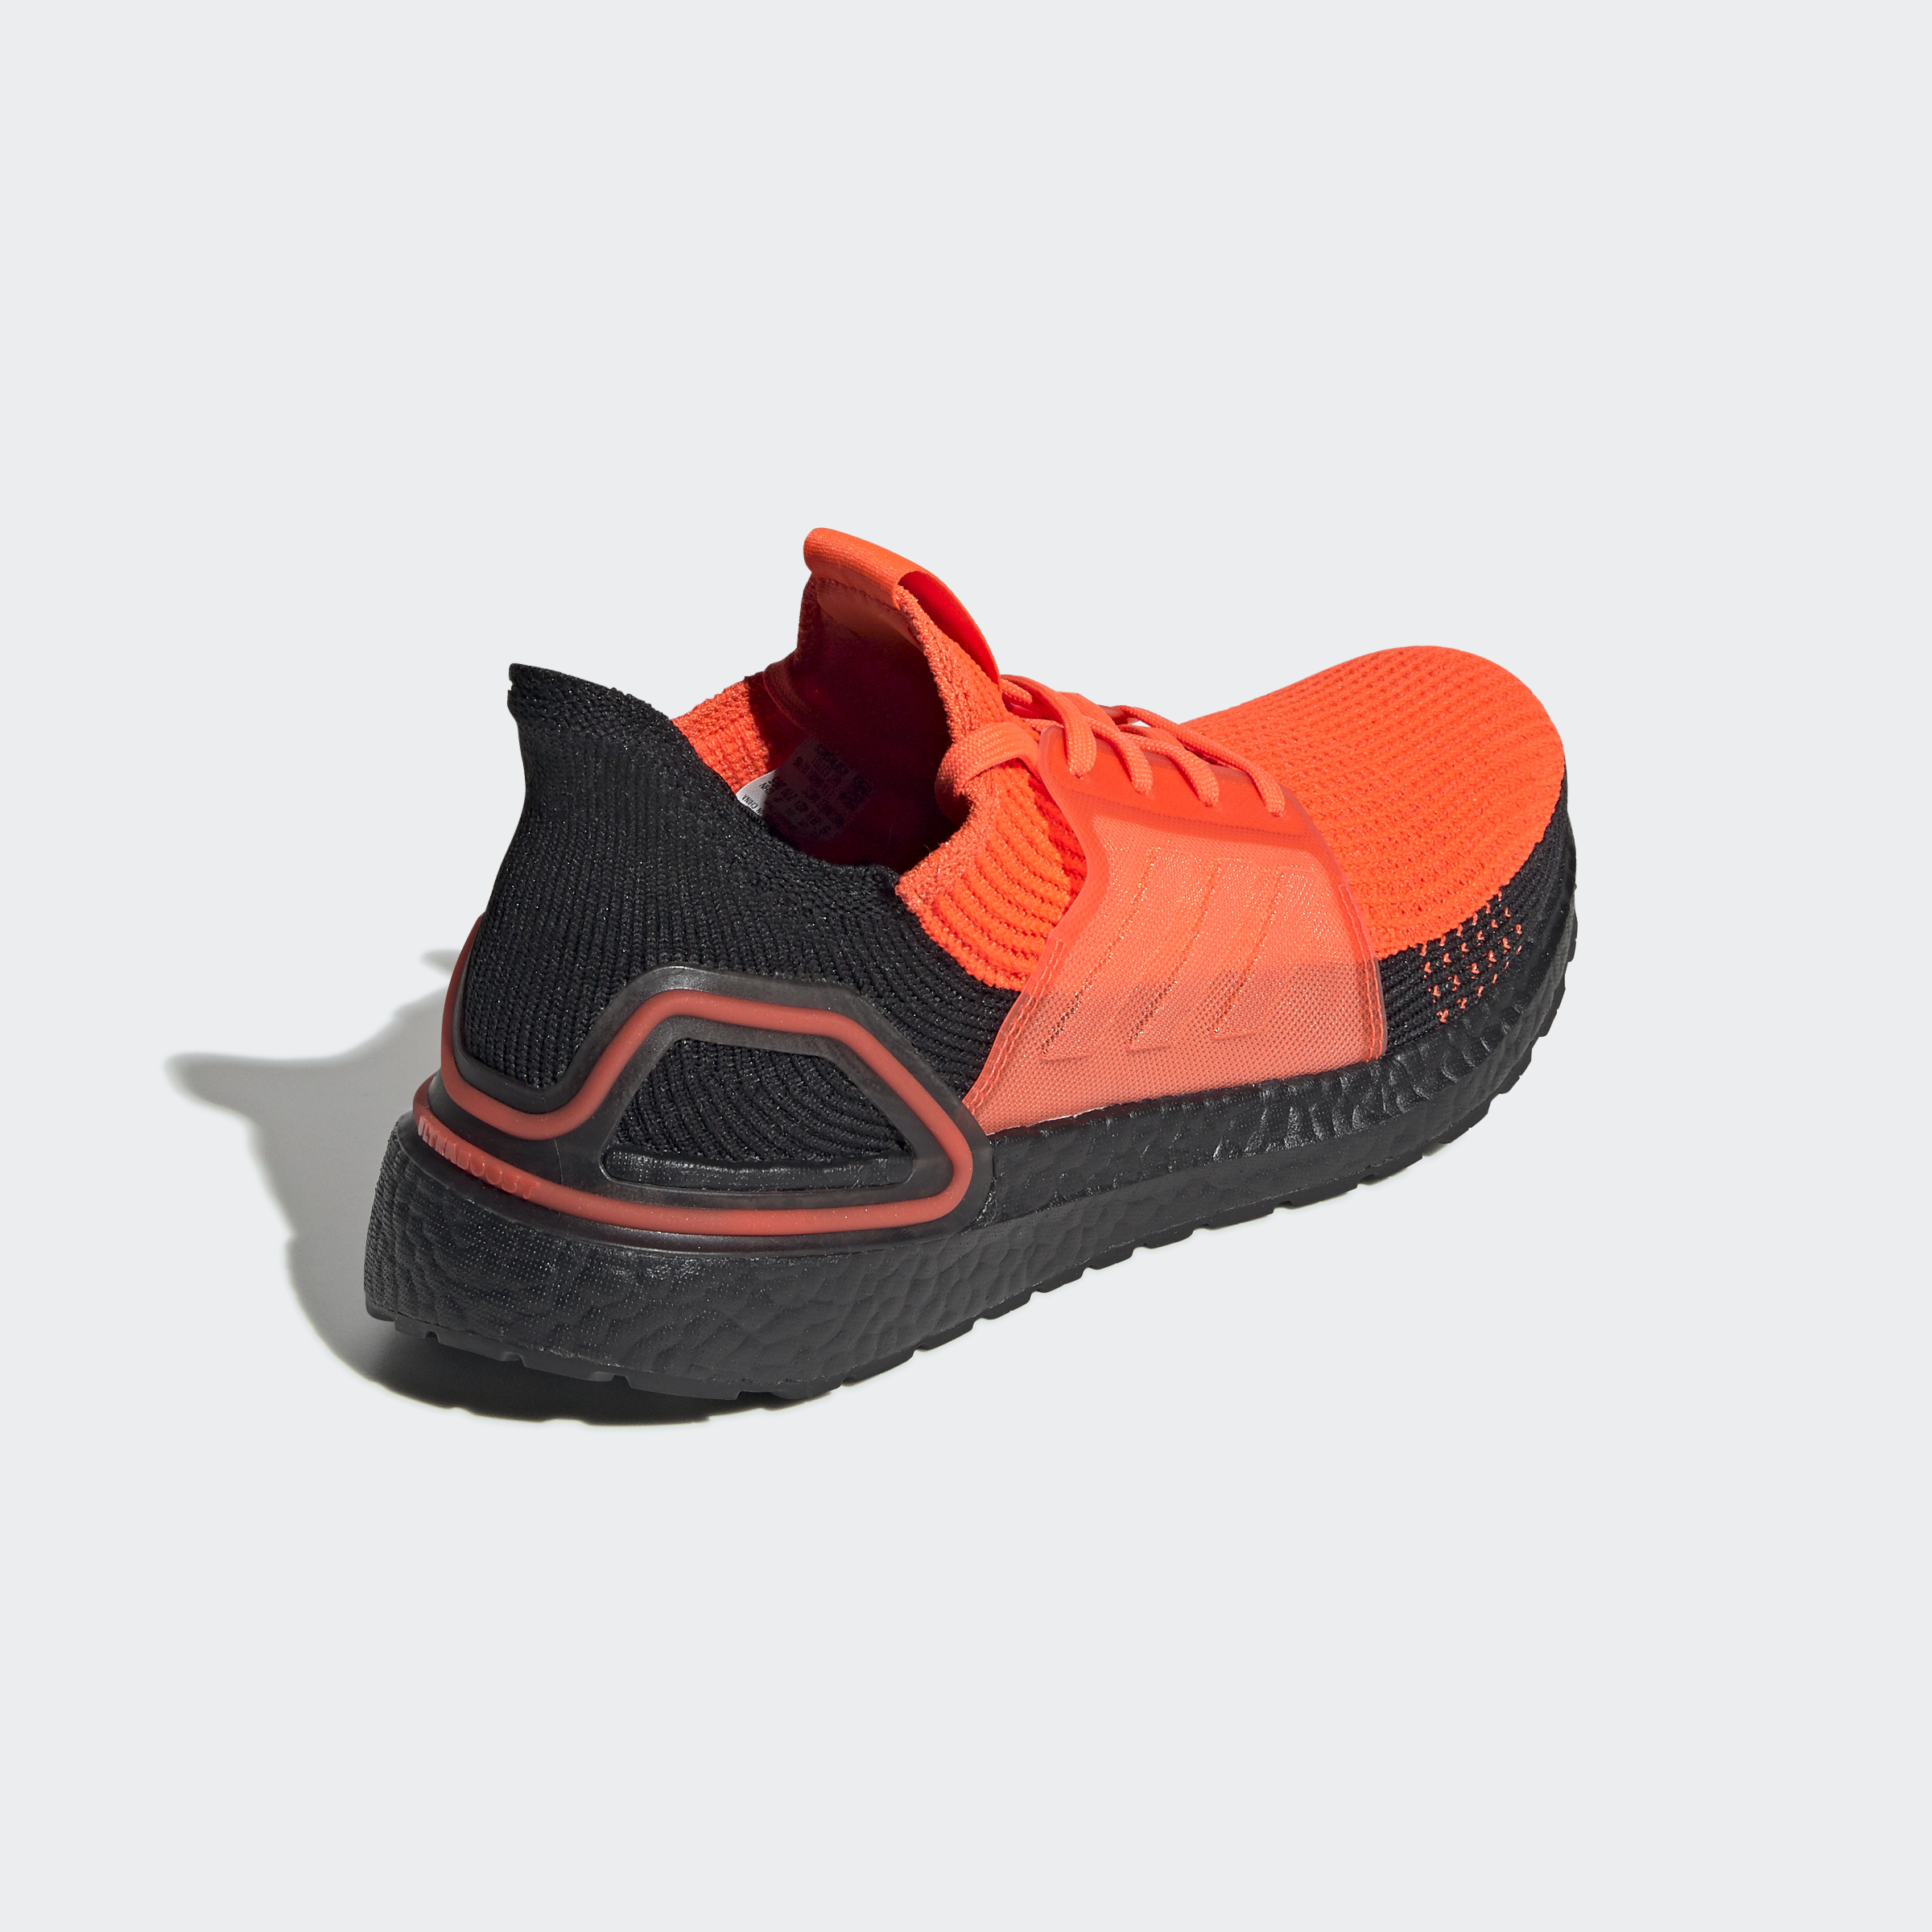 adidas-Ultraboost-19-Shoes-Athletic-amp-Sneakers thumbnail 50